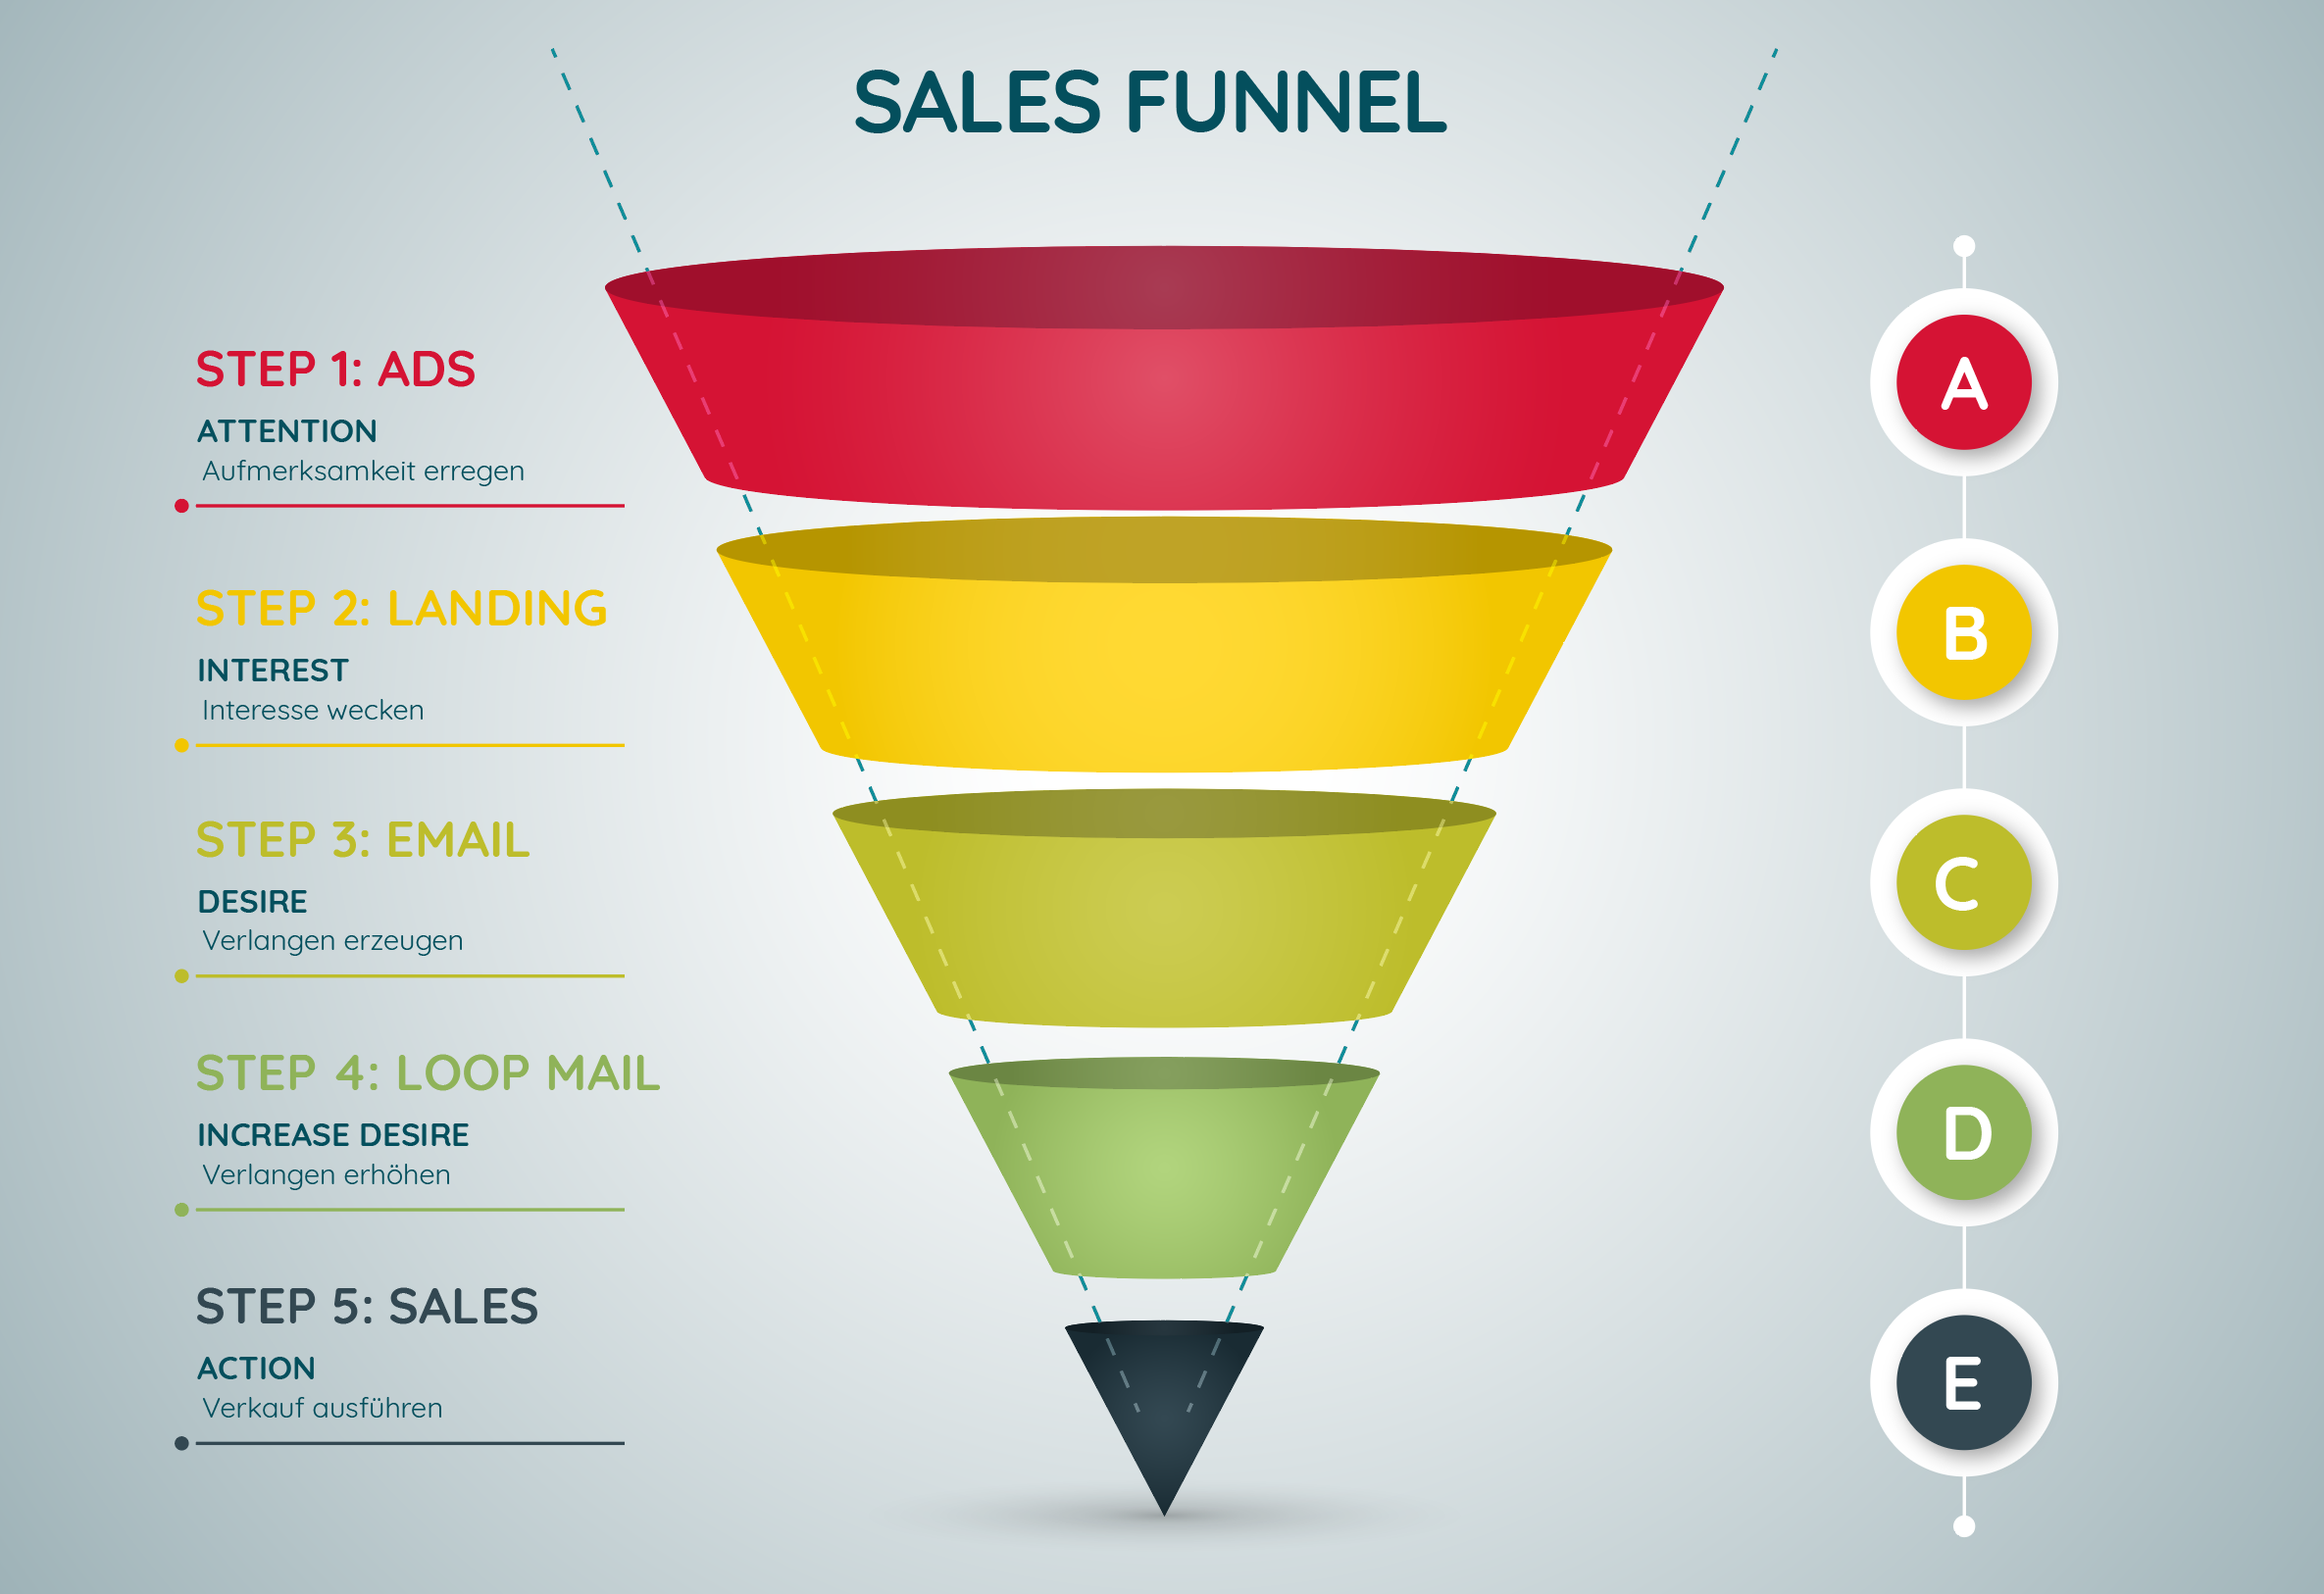 Sales Funnel GHC GmbH